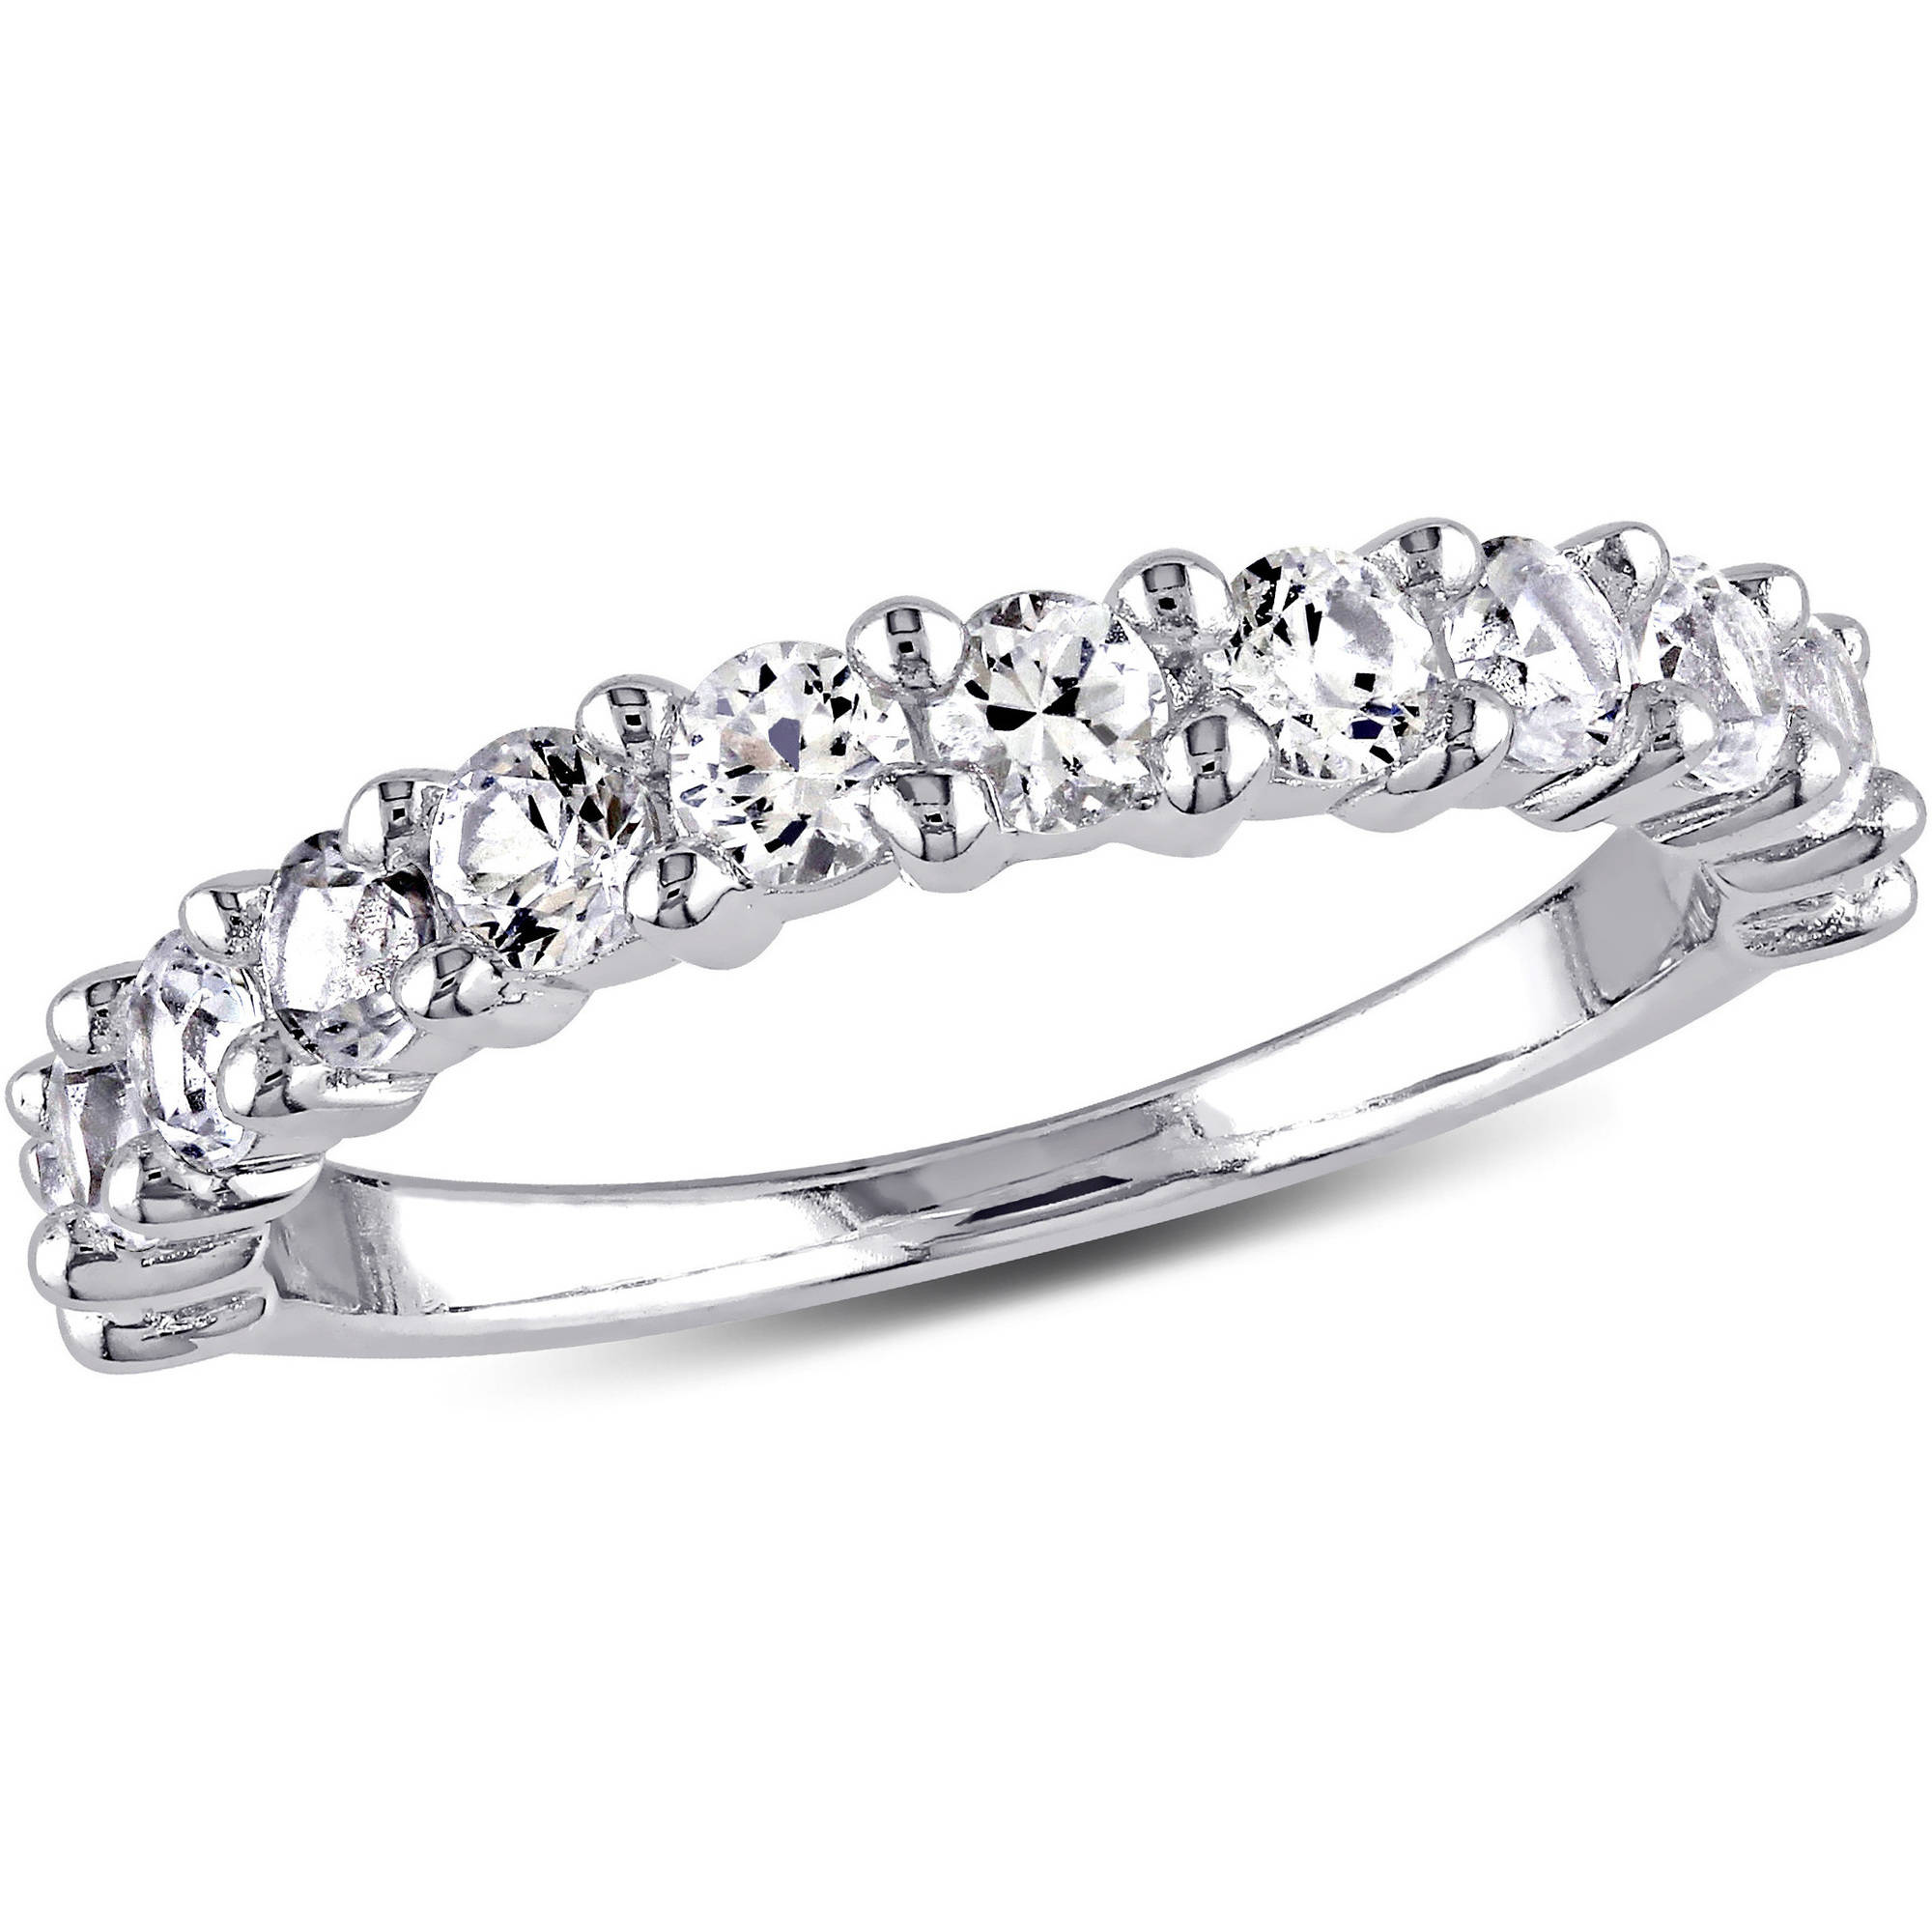 Miabella 1-1/10 Carat T.G.W. Created White Sapphire Sterling Silver Wedding Band